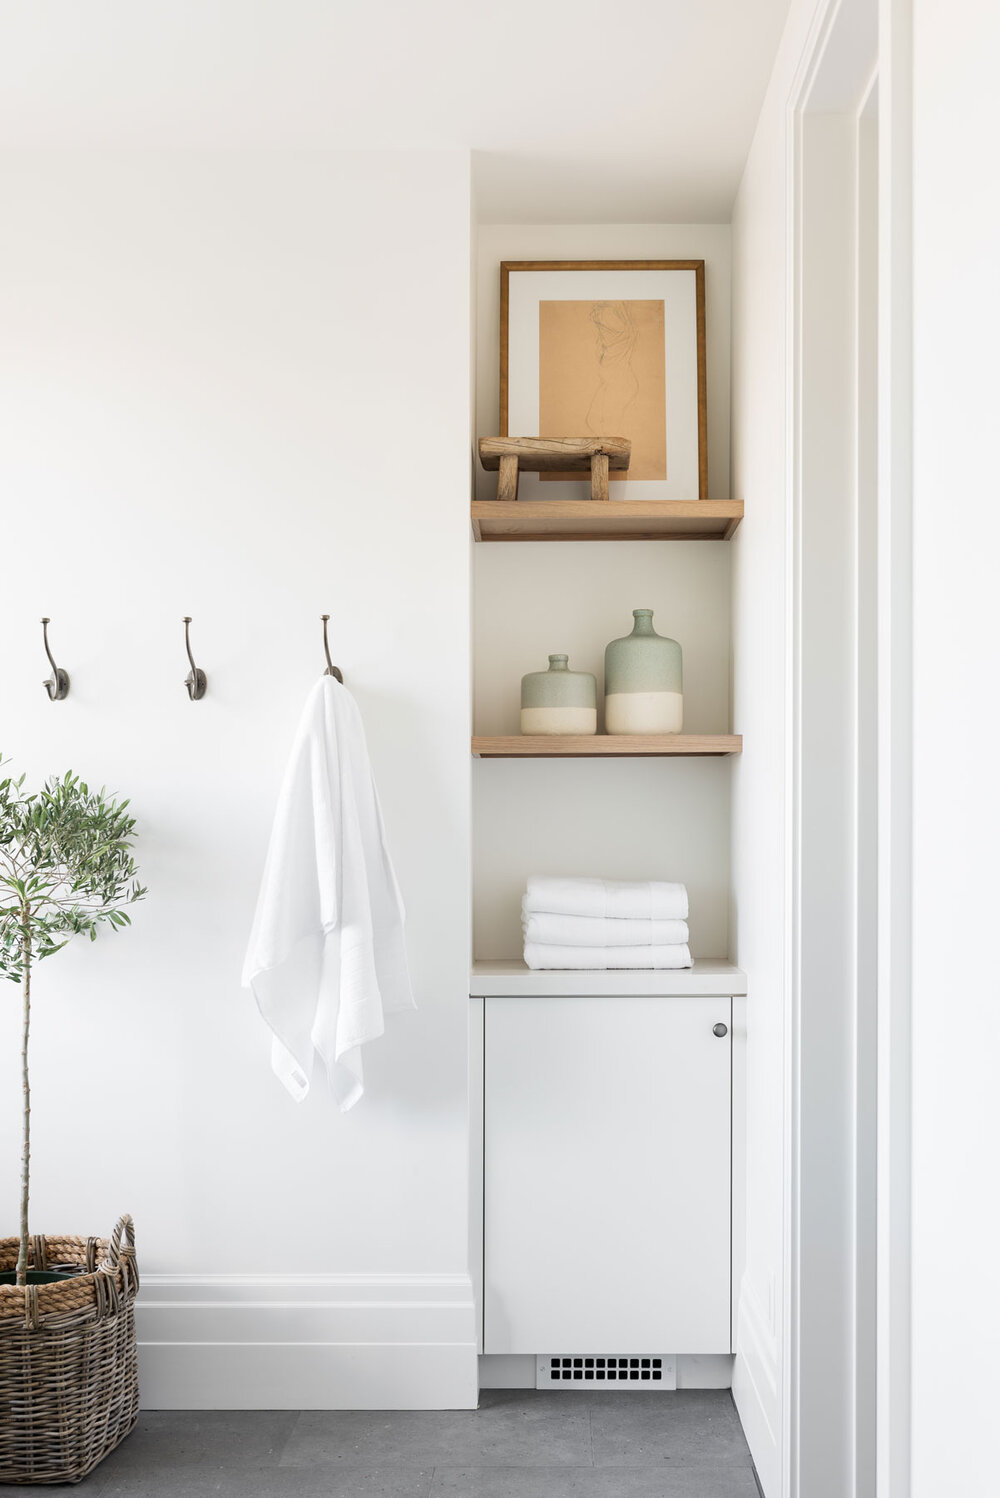 5 Ways to Refresh Your Bathroom Space